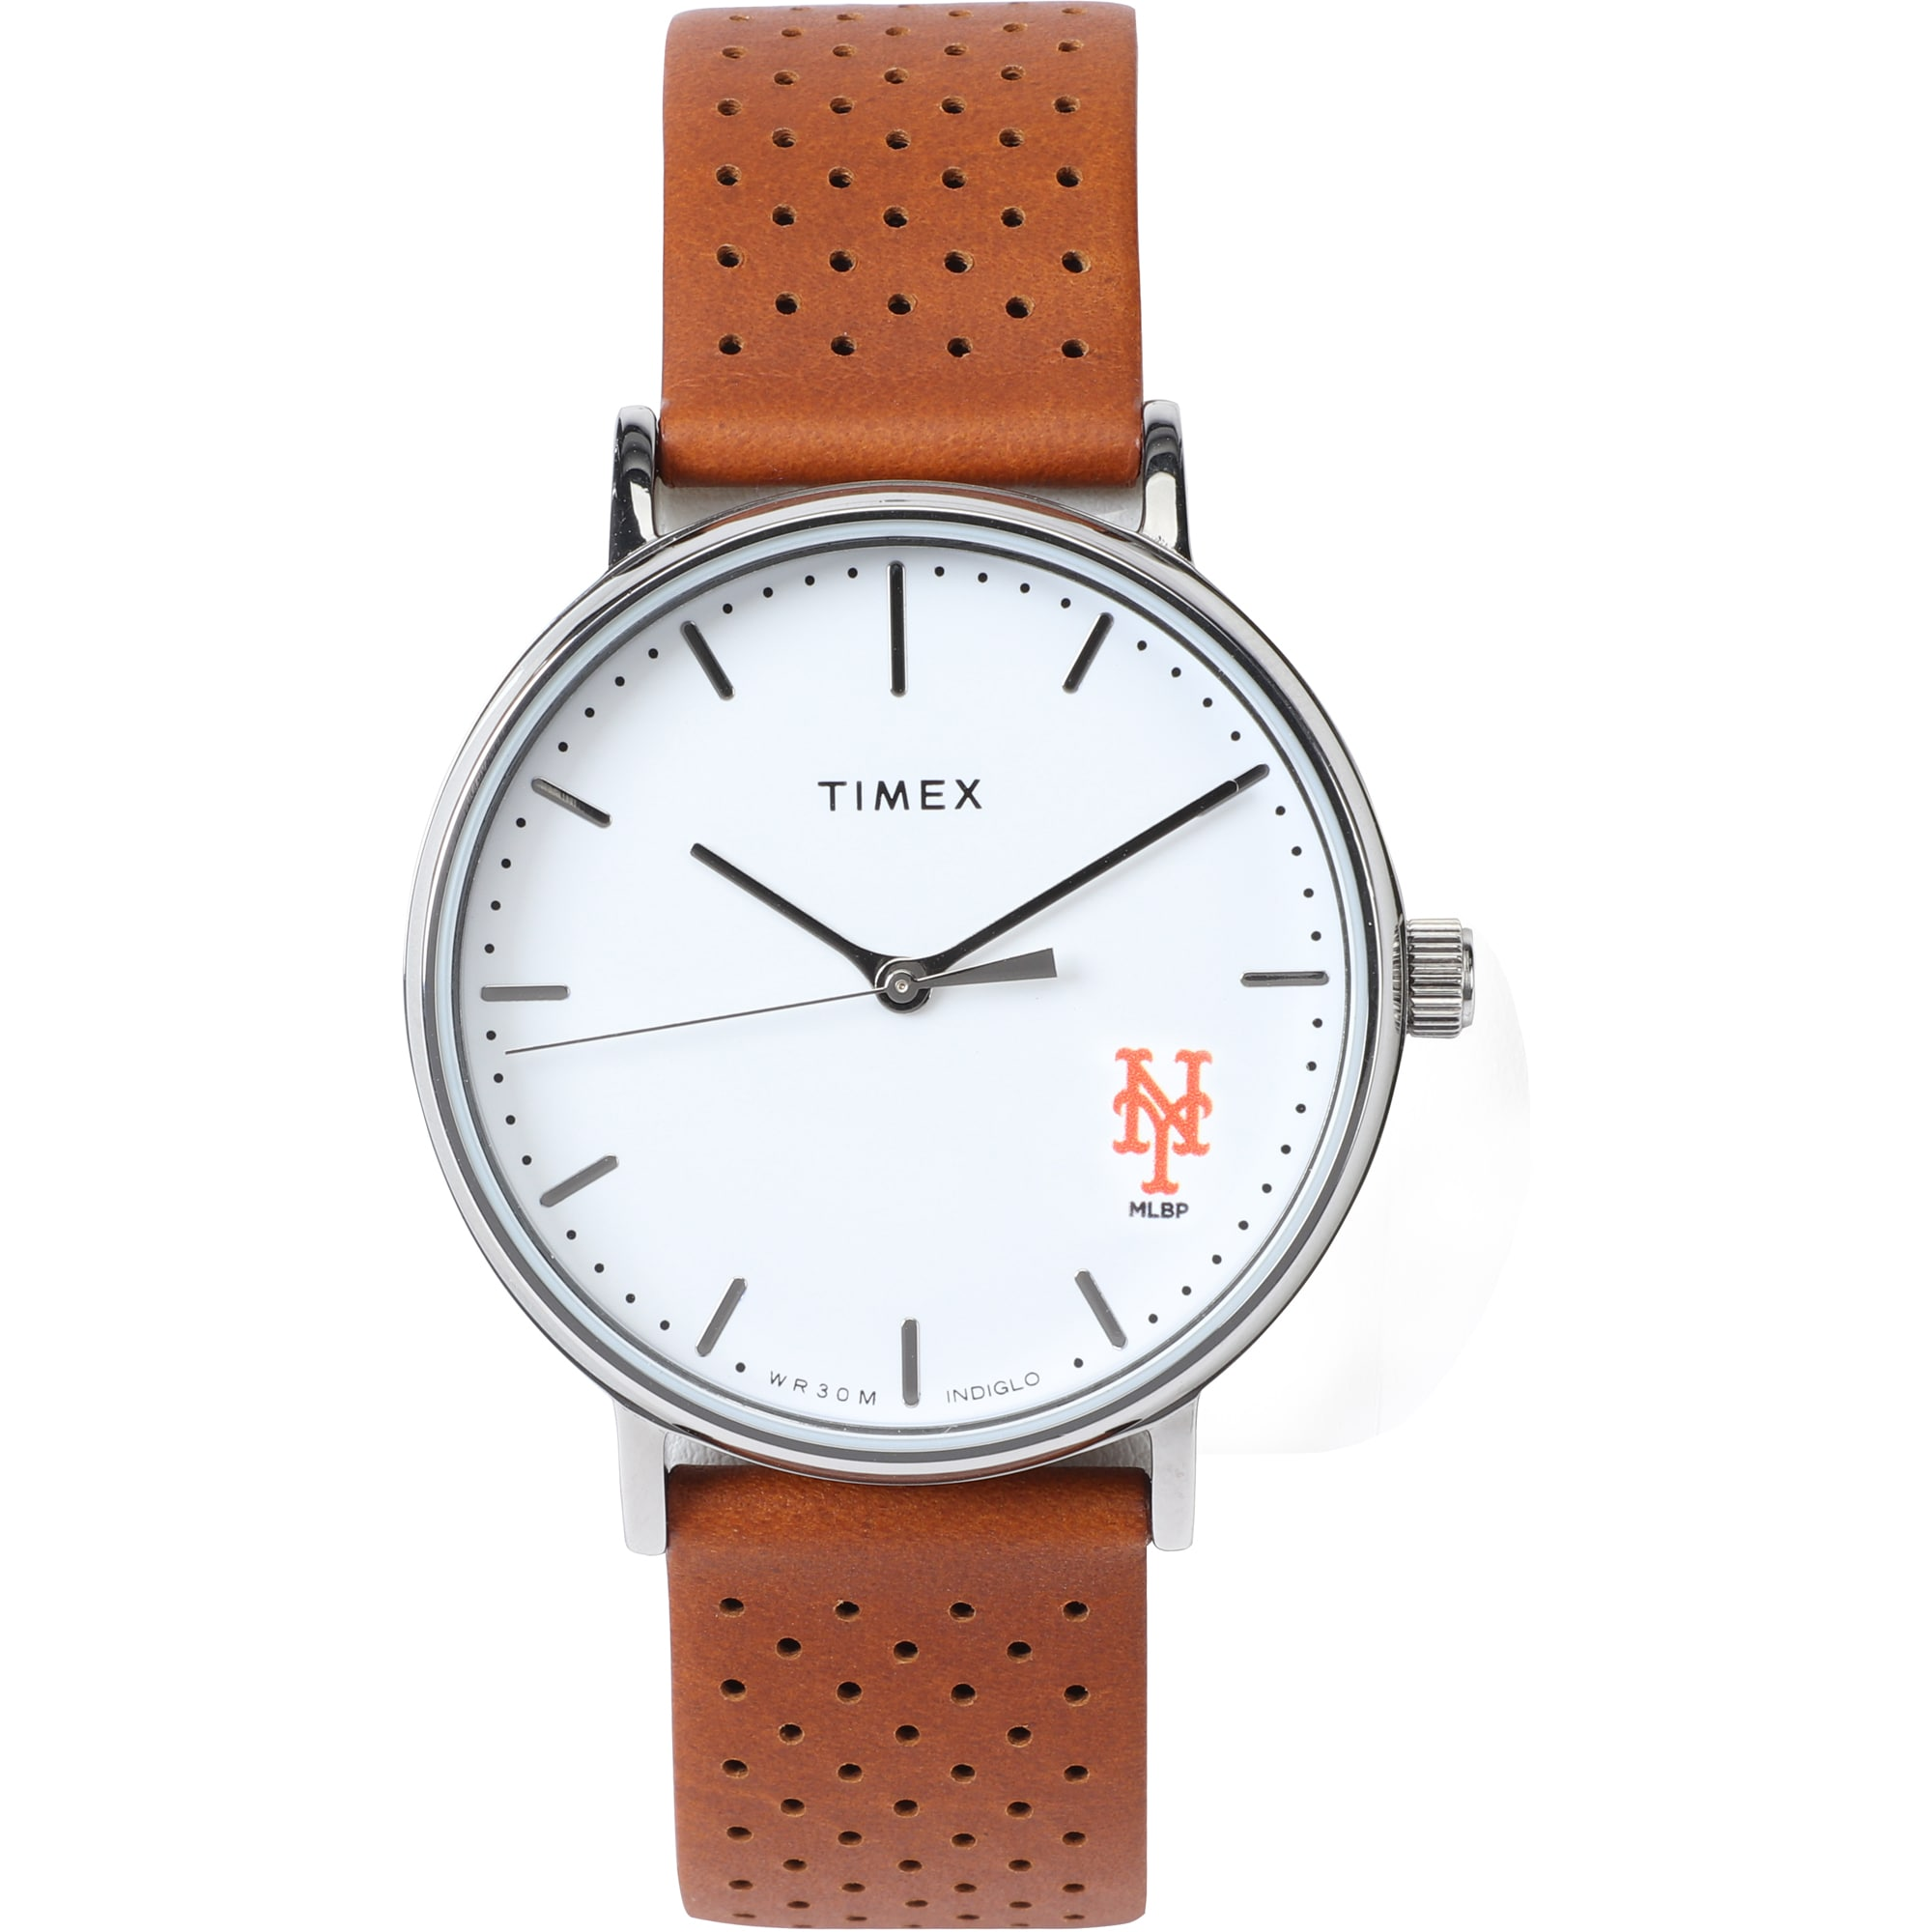 New York Mets Timex Bright Whites Tribute Collection Watch